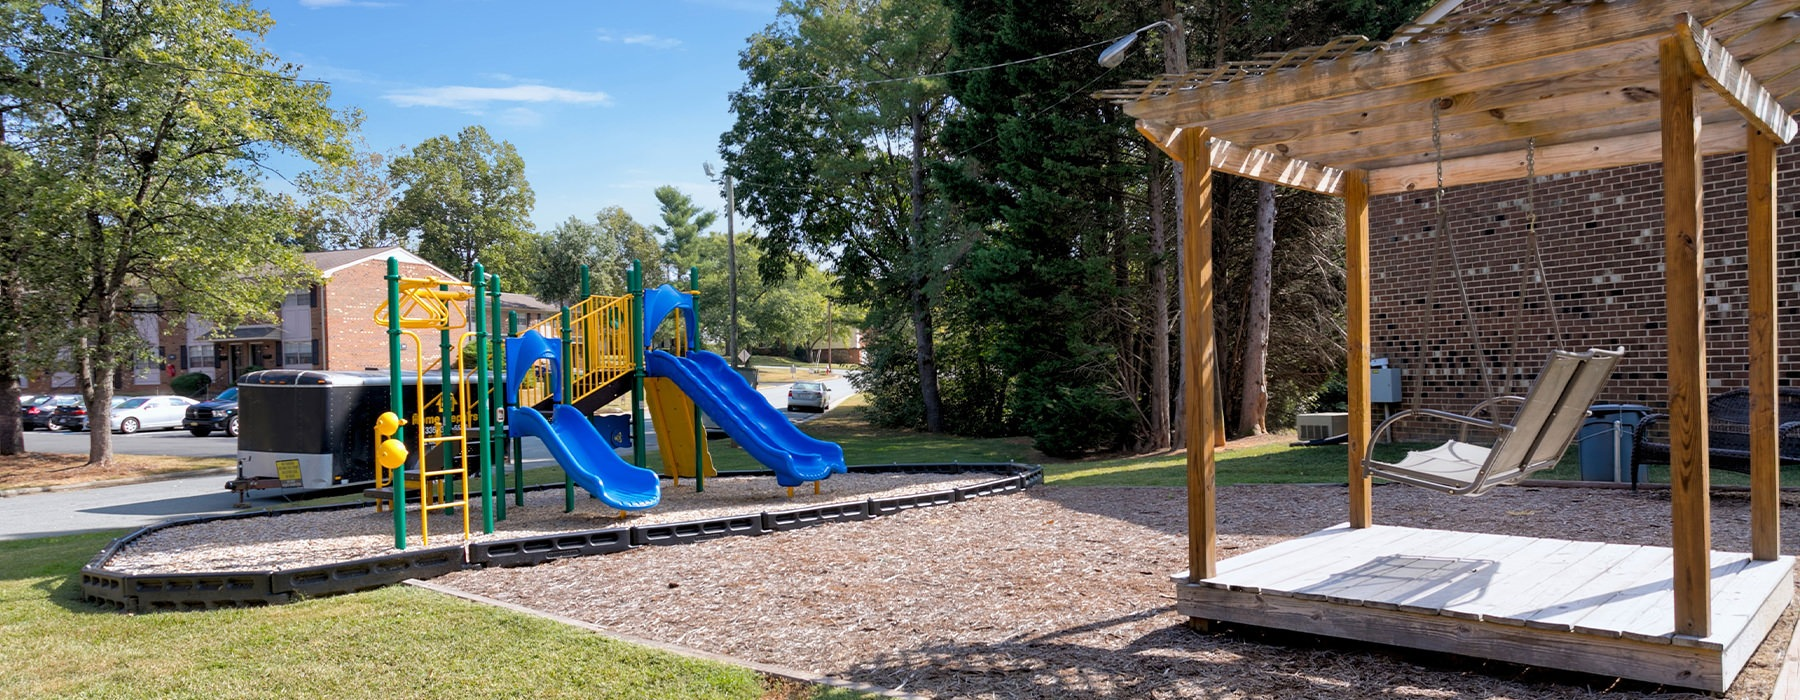 An outdoor playground and seating area